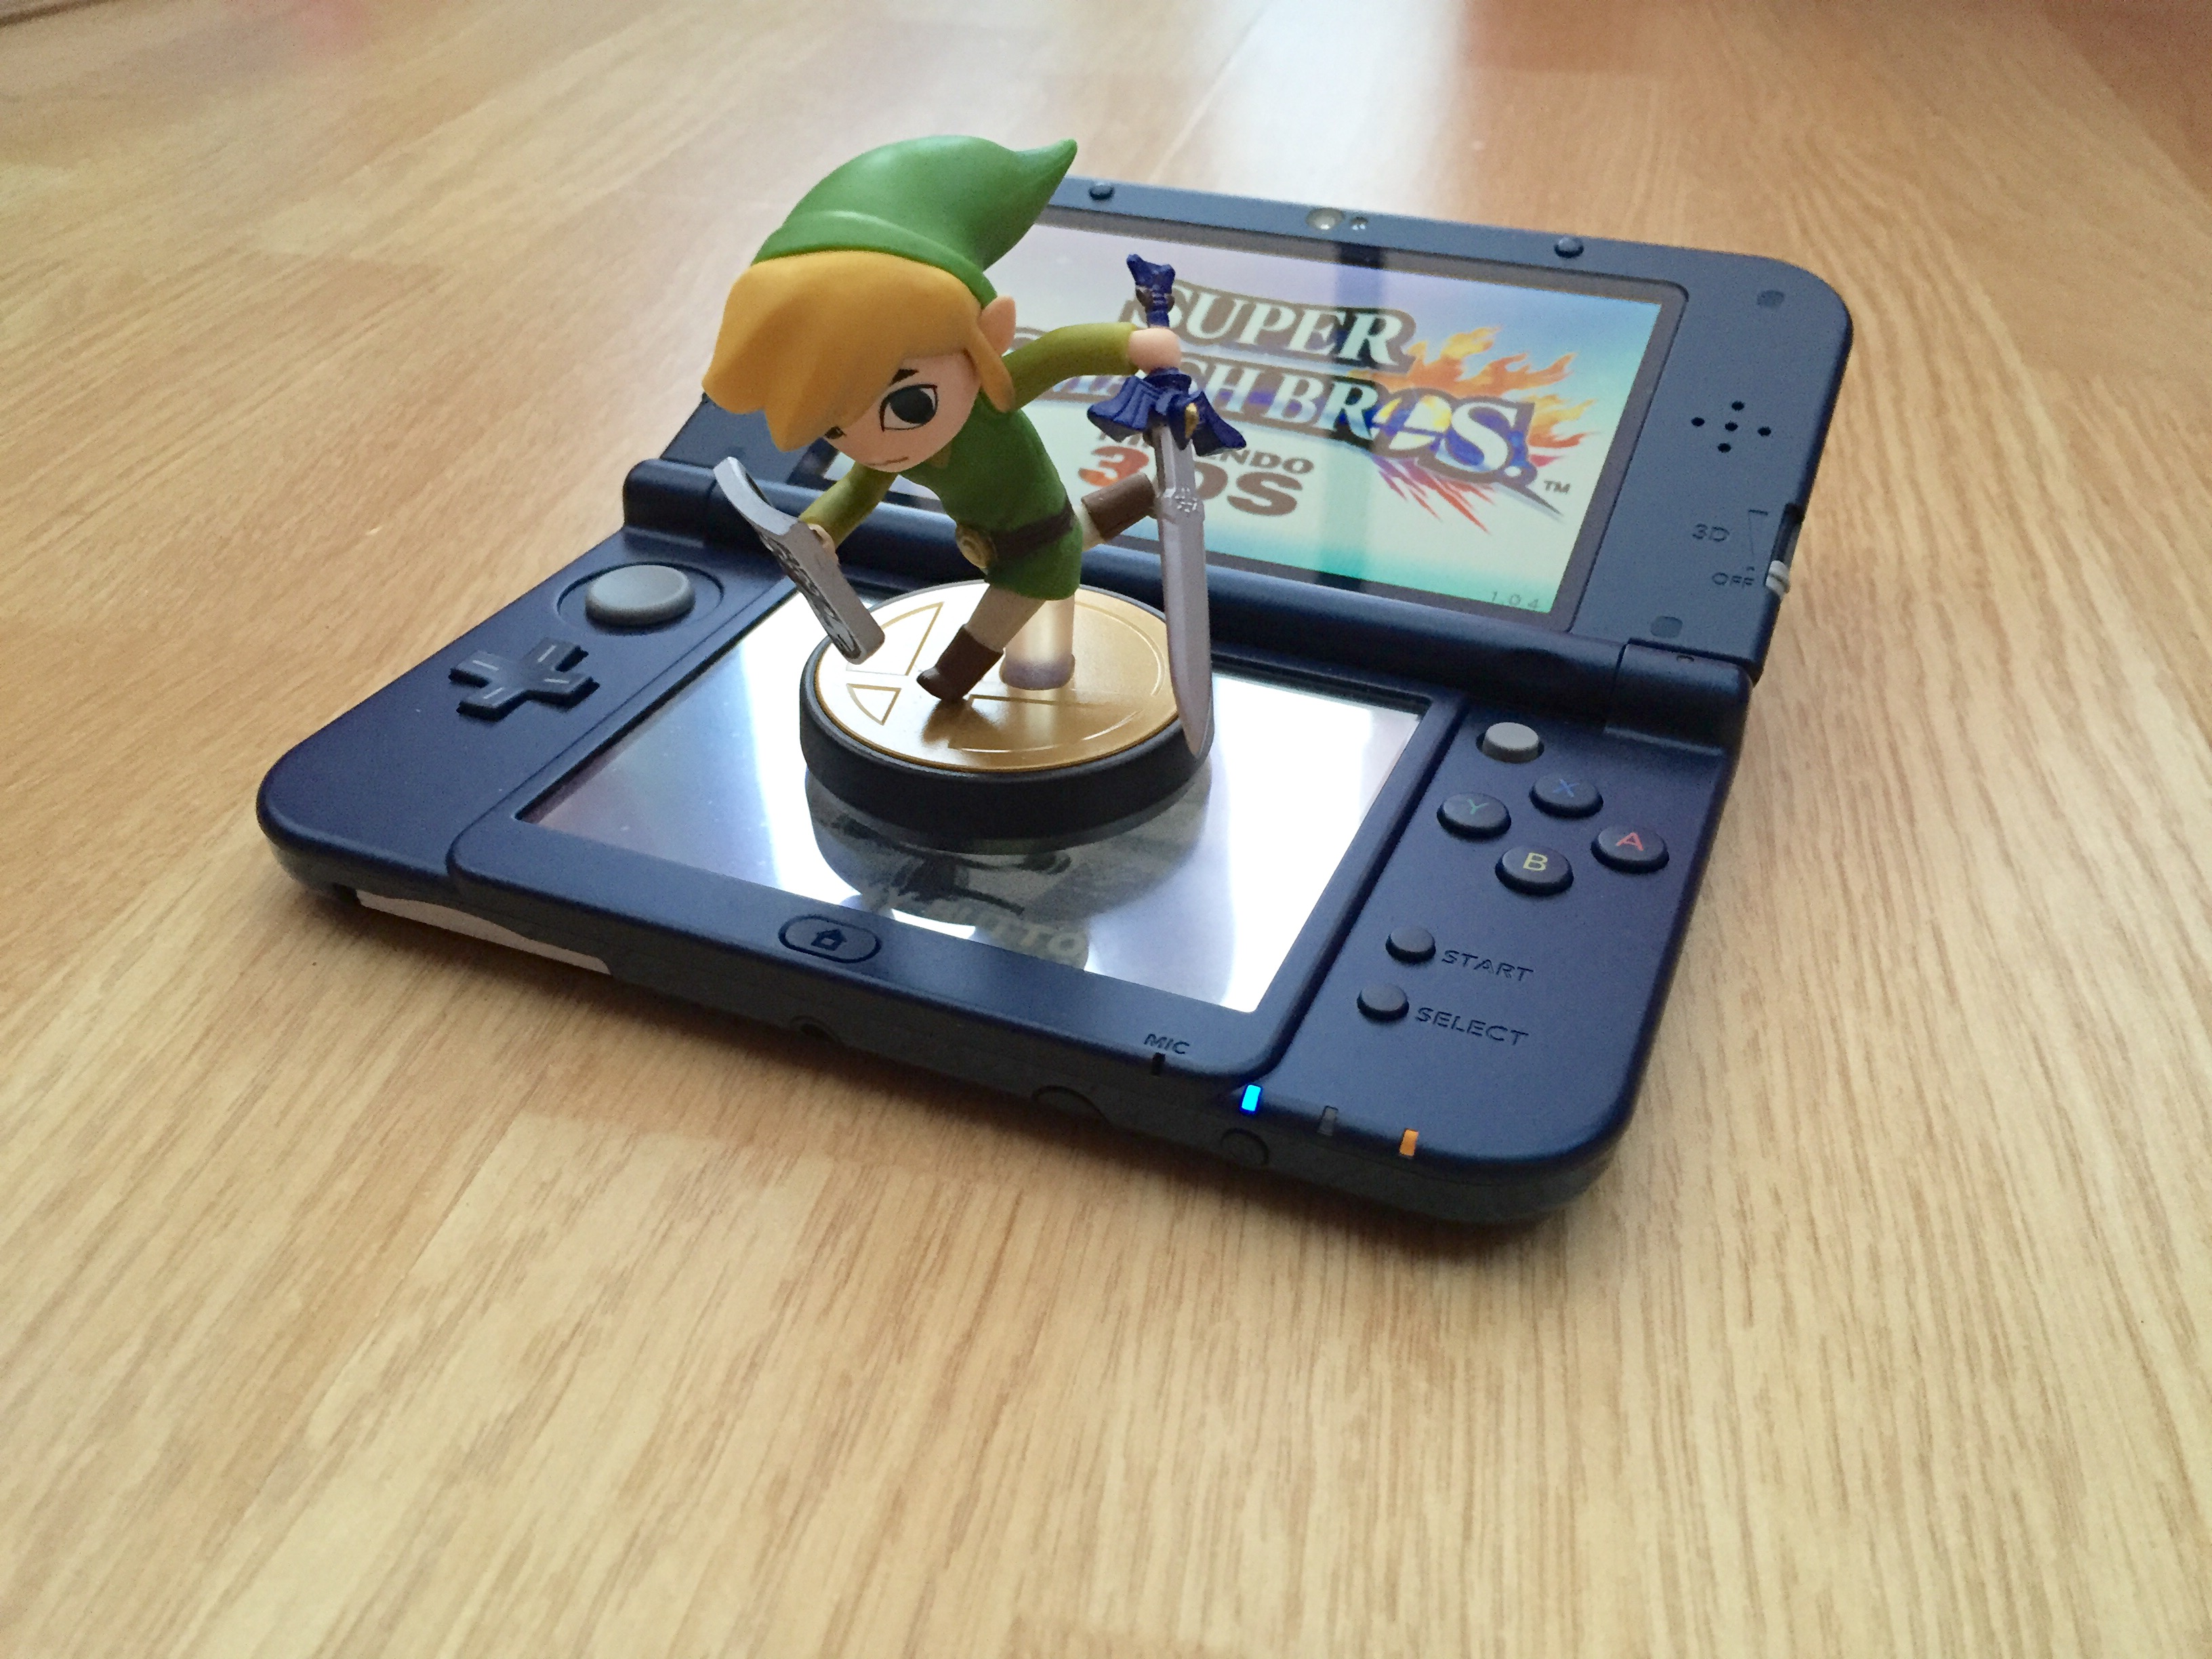 Ns Review Hands On With The New Nintendo 3ds Xl Scene 3 Ds Metallic Black Offering Nothing More Than Ability To Register Ownership A Feature I Should Also Touch Is Amiibo Settings Menu Option